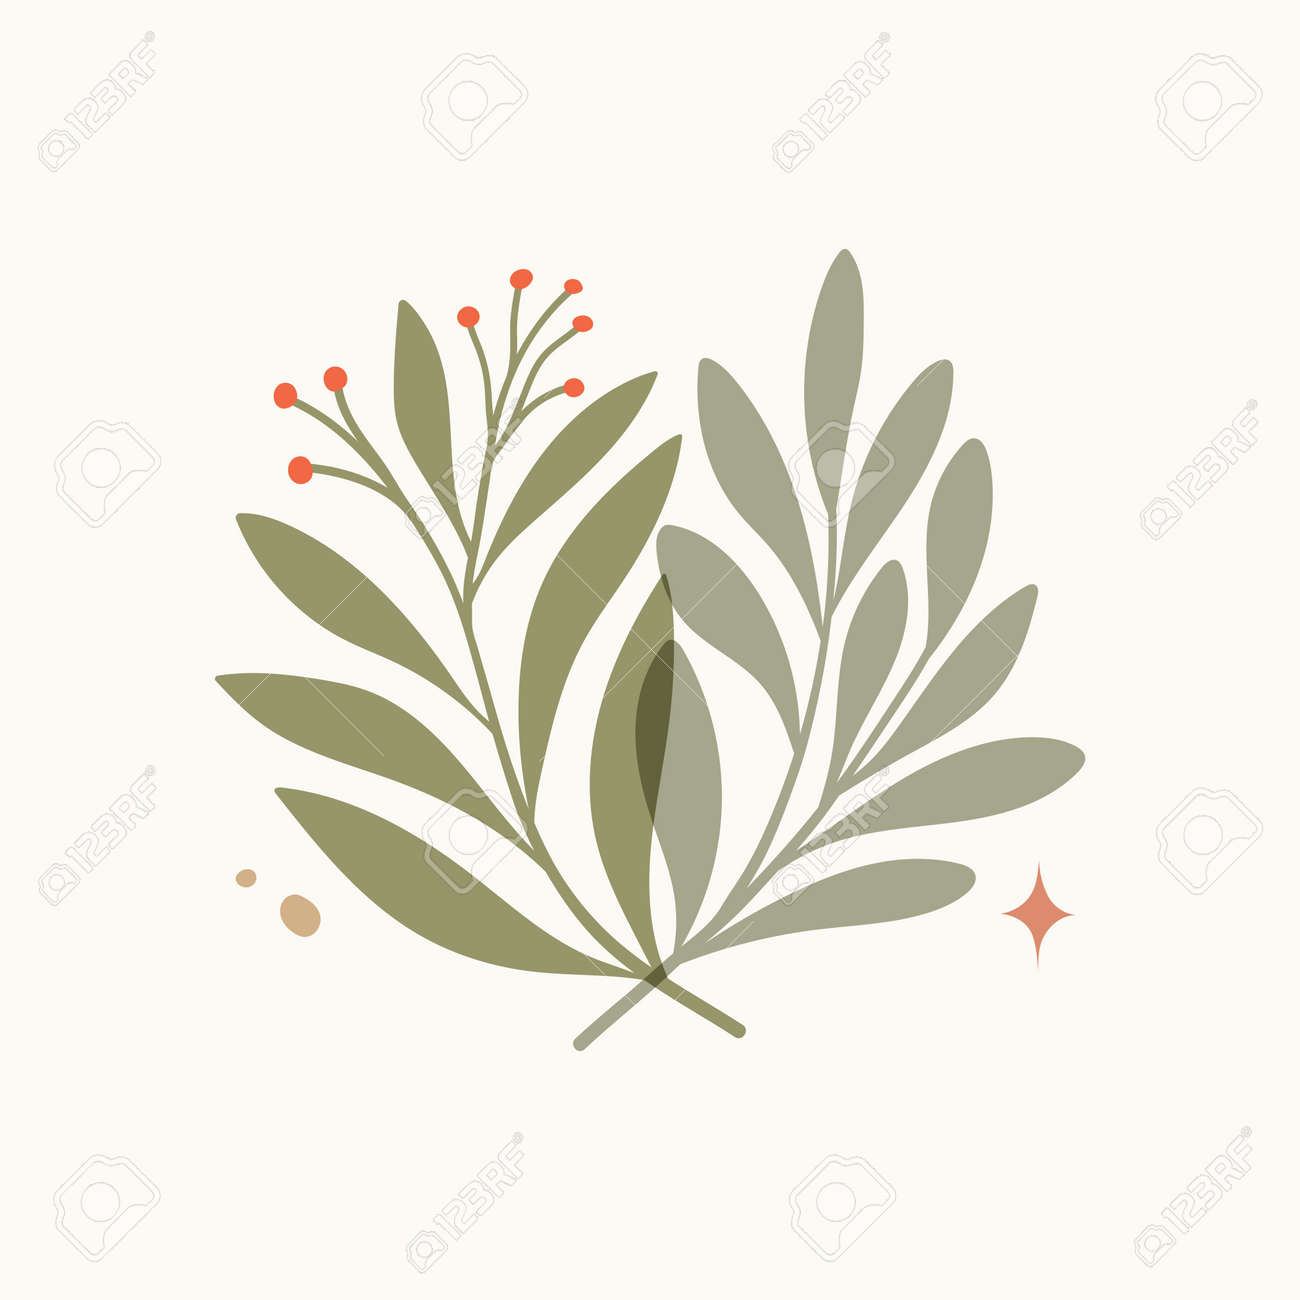 Vector modern floral arrangement background. Cute delicate botanical illustration with leaves and plants. - 168265029